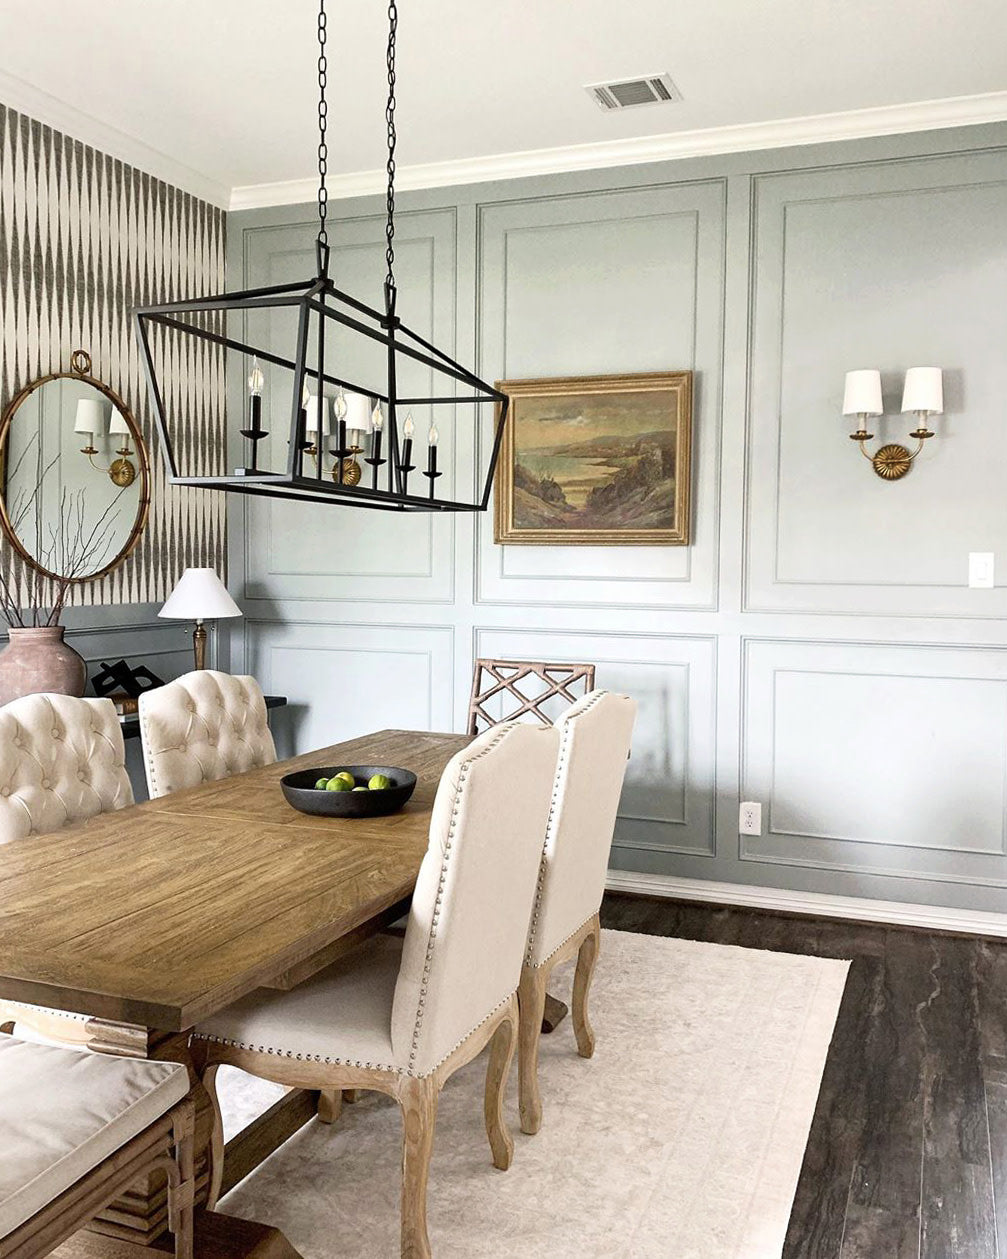 Creativity is all it takes to personalize your space. From wallpaper to DIY wainscoting, here are some amazing dining room design ideas.